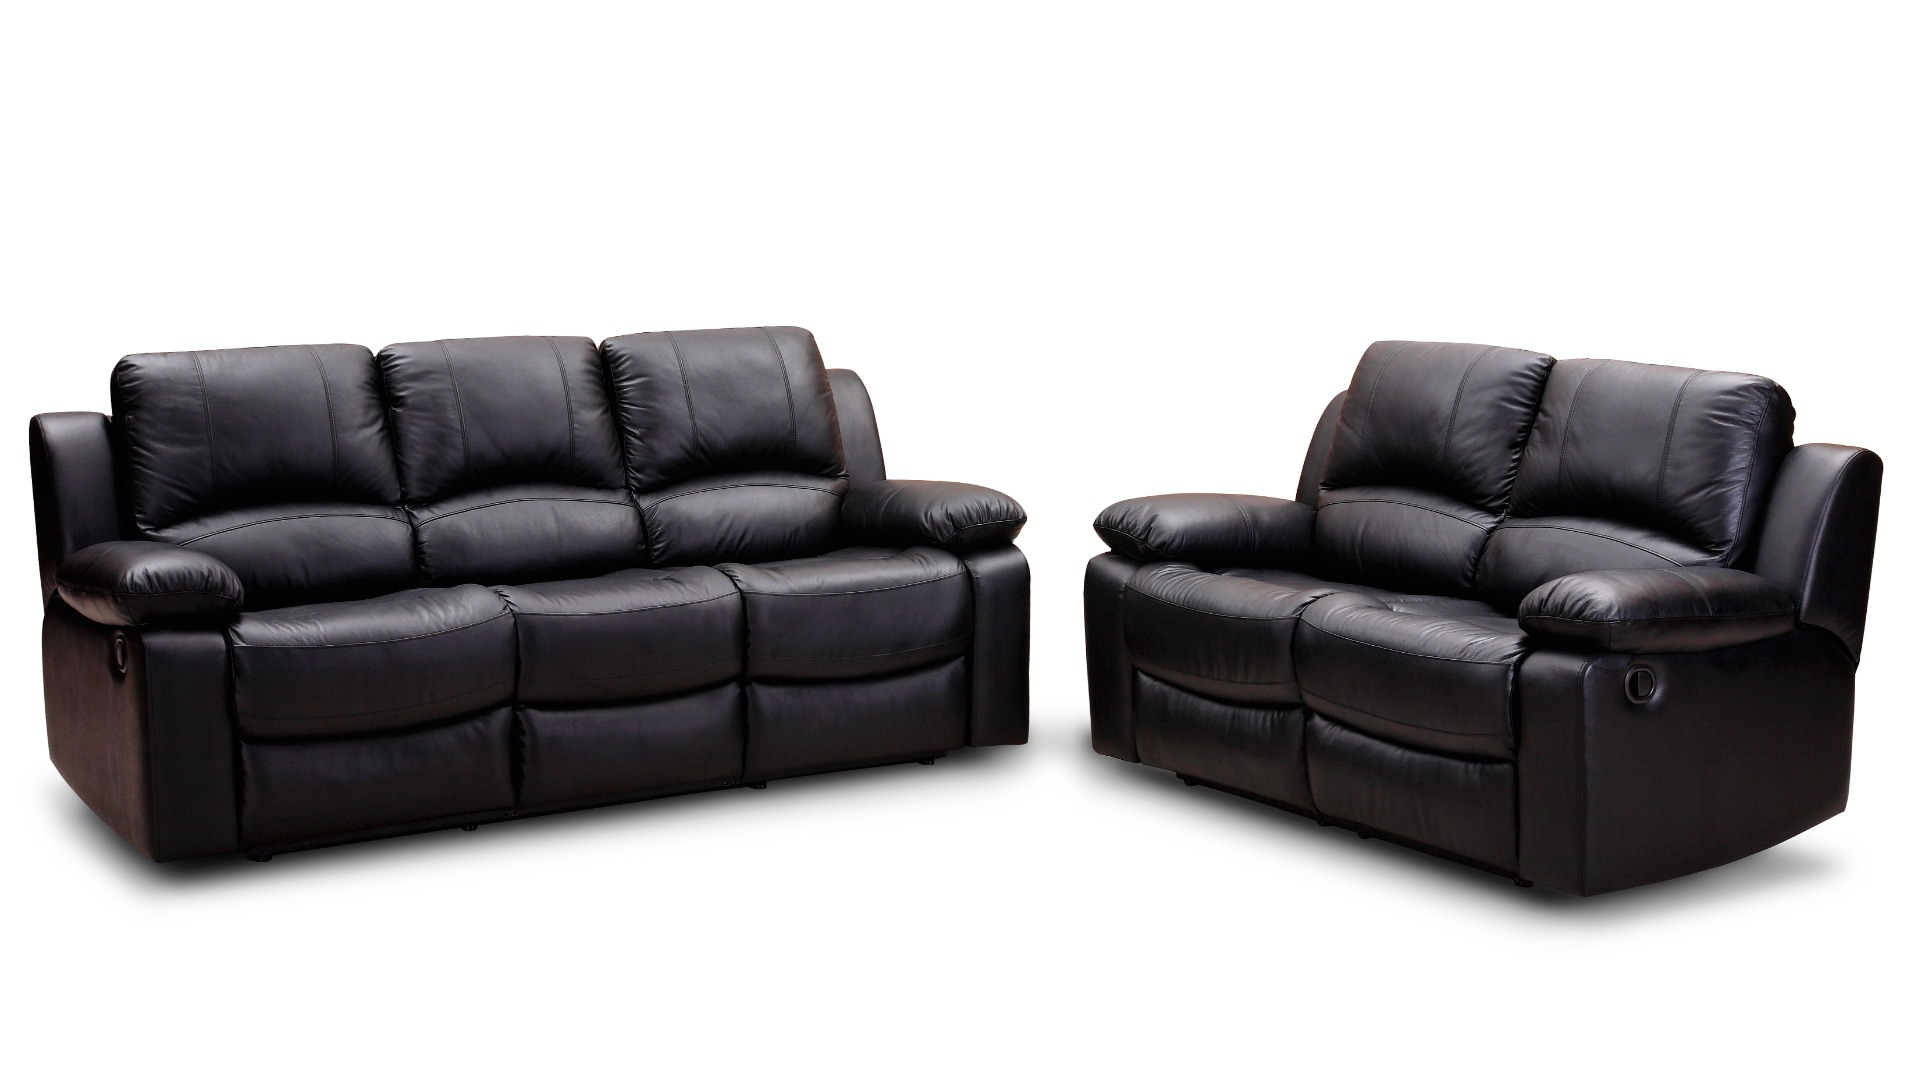 Black leather padded cushion couch near to black leather for Sofas de 4 plazas baratos